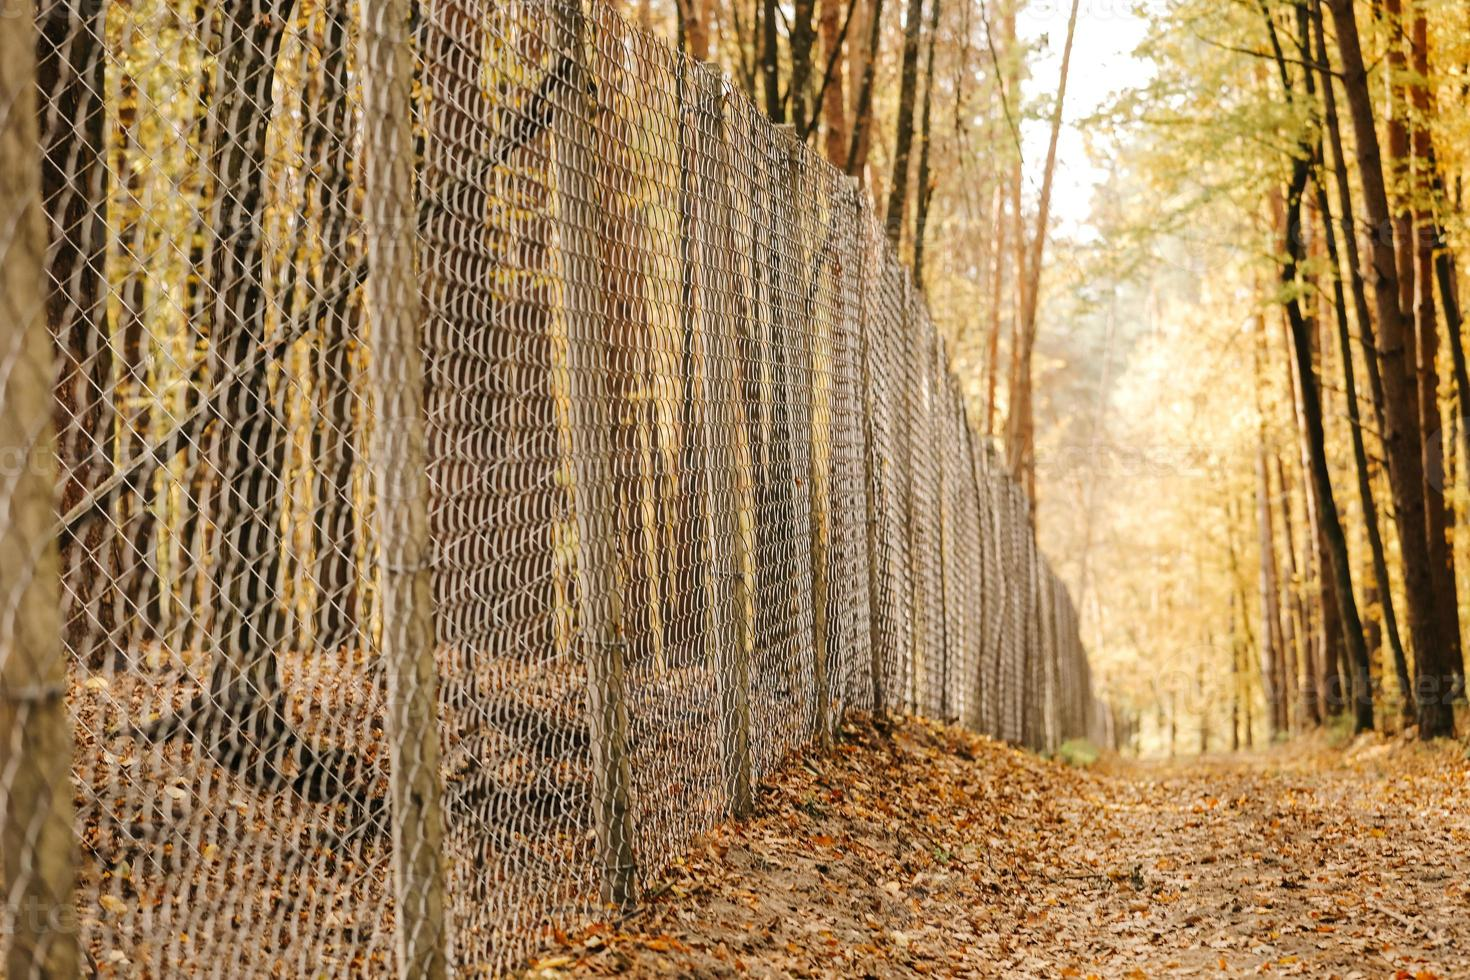 Outdoor metal fence in autumn photo